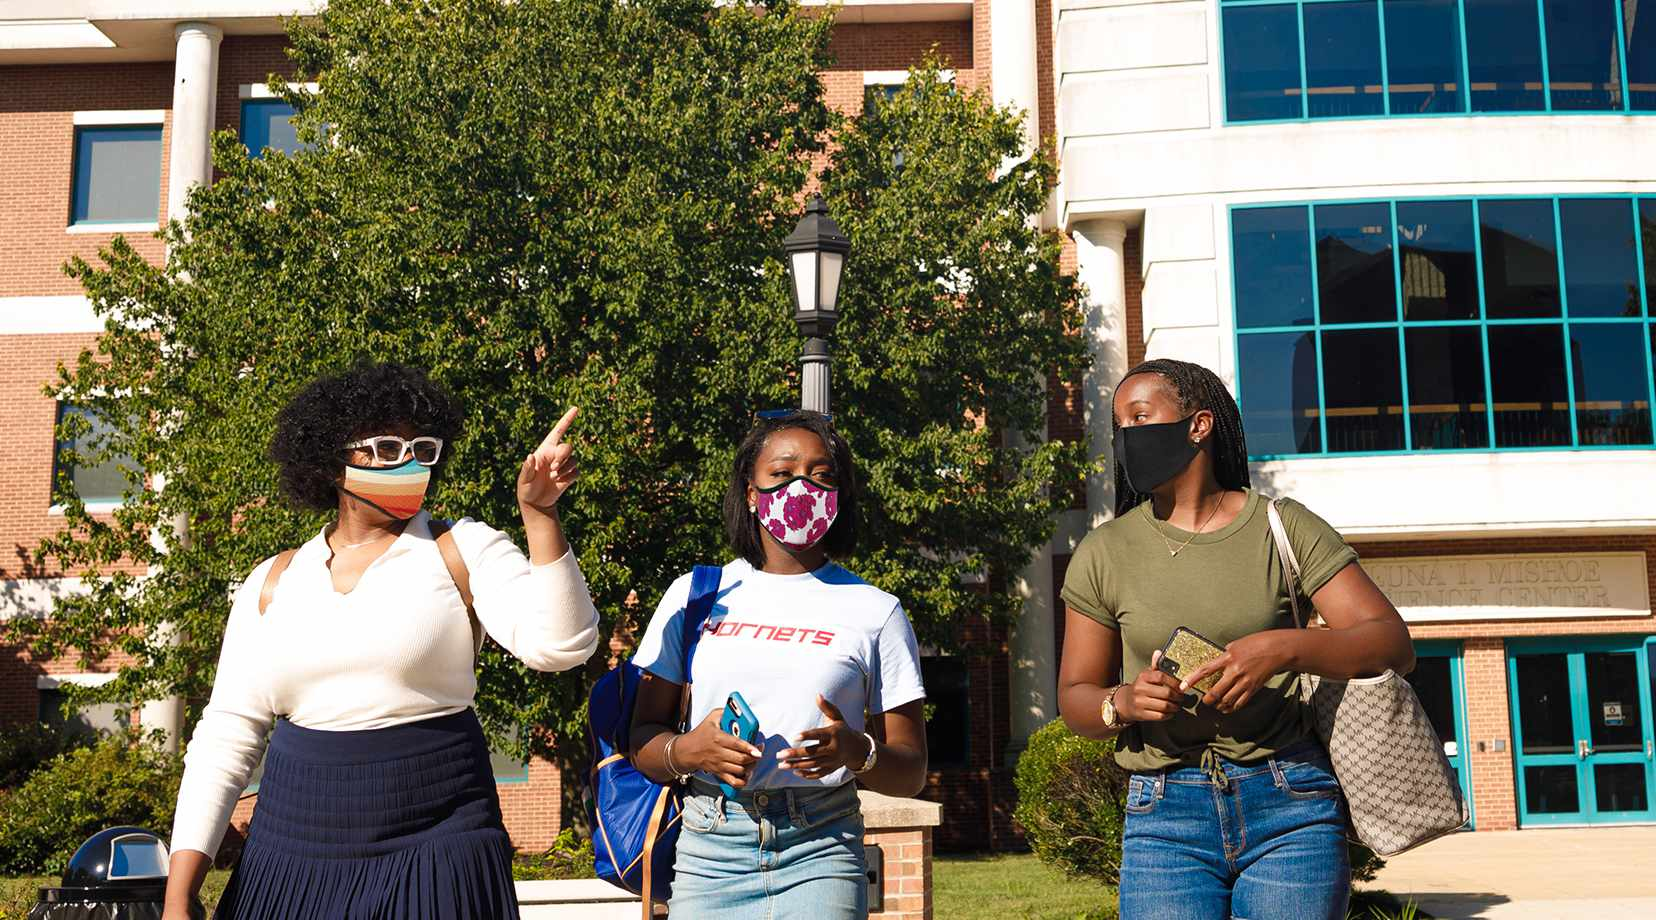 Message as semester begins: Wear masks in public spaces